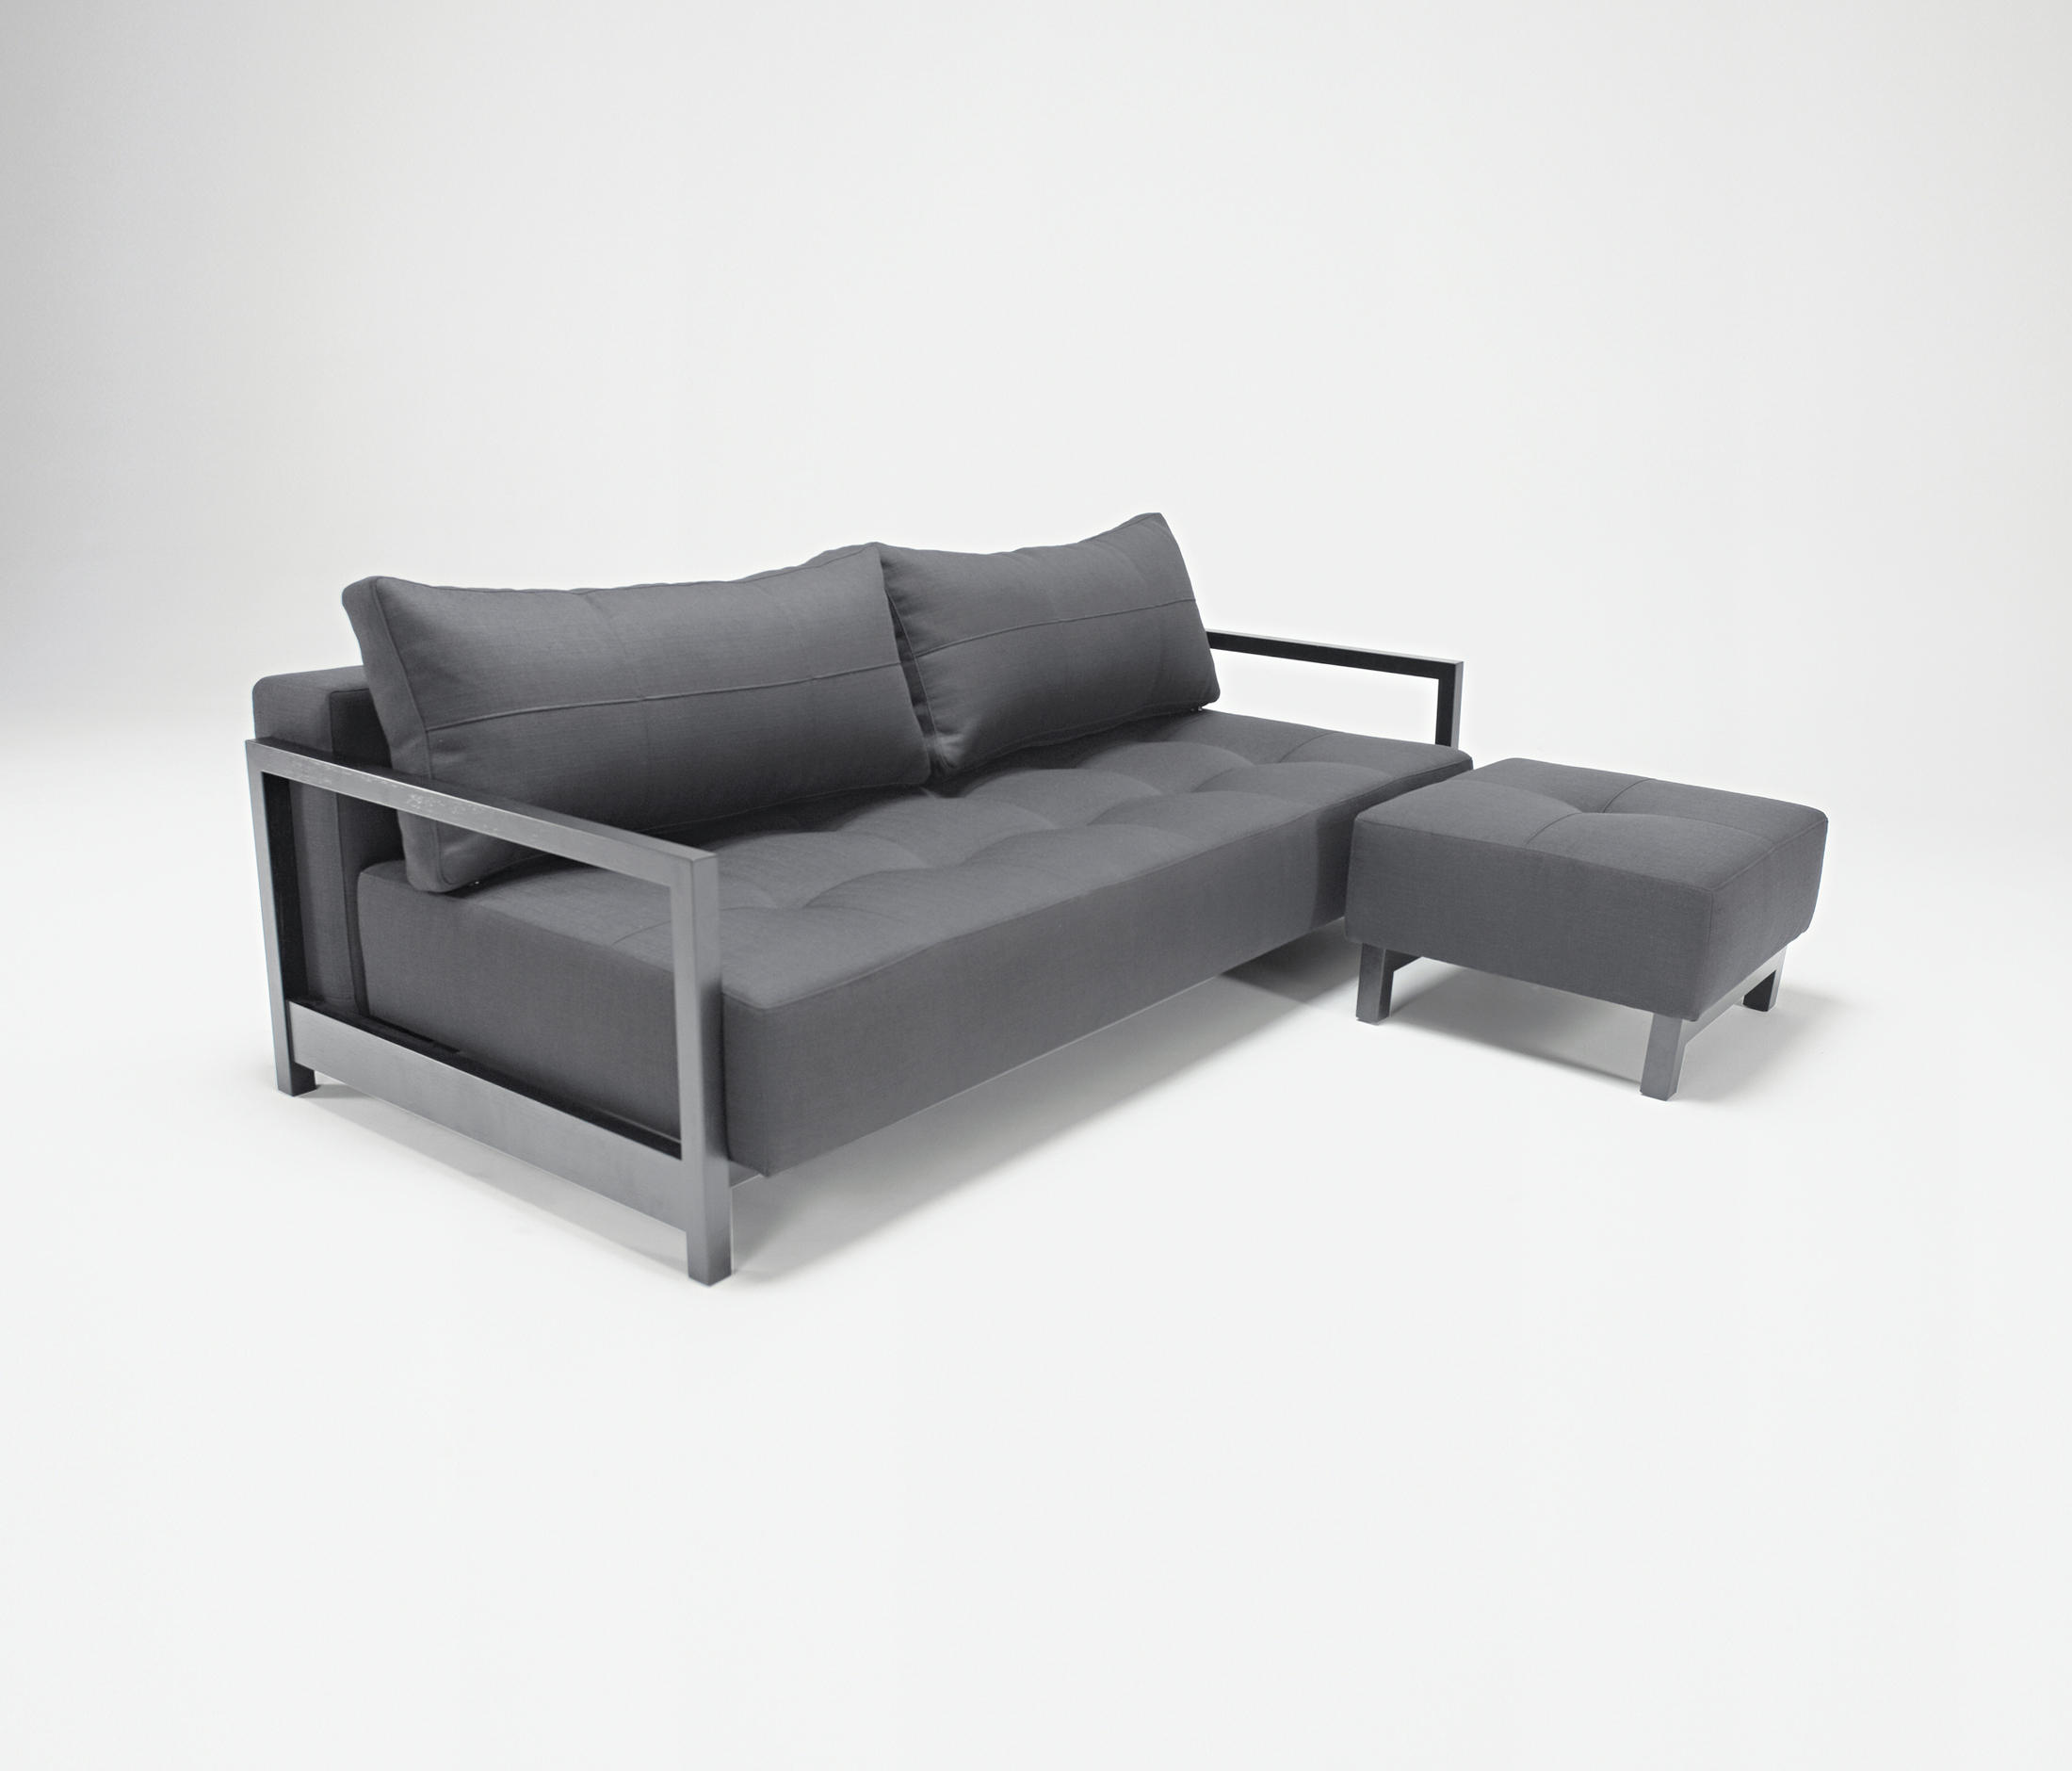 Bifrost Sofas Von Innovation Randers Architonic